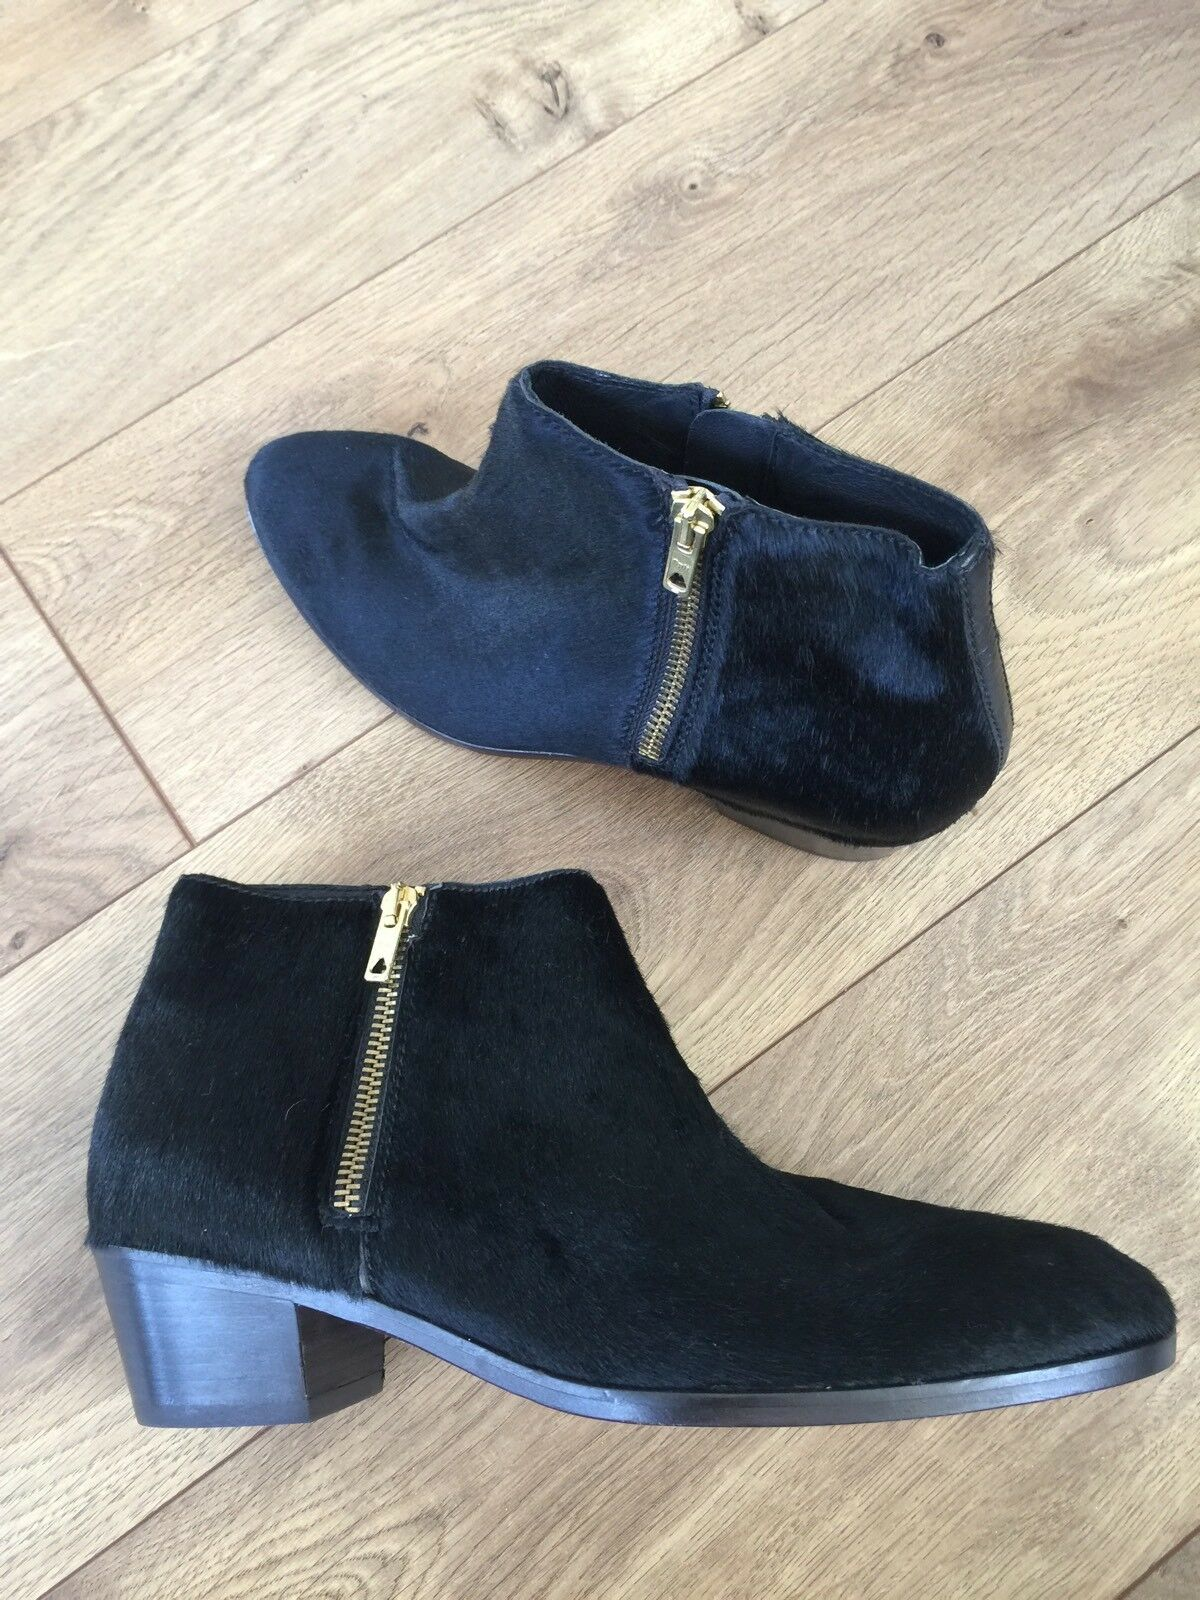 NEW J.CREW COLLECTION REMI CALF HAIR B0945 DOUBLE-ZIP ANKLE BOOTS SIZE 7M BLACK B0945 HAIR f34510